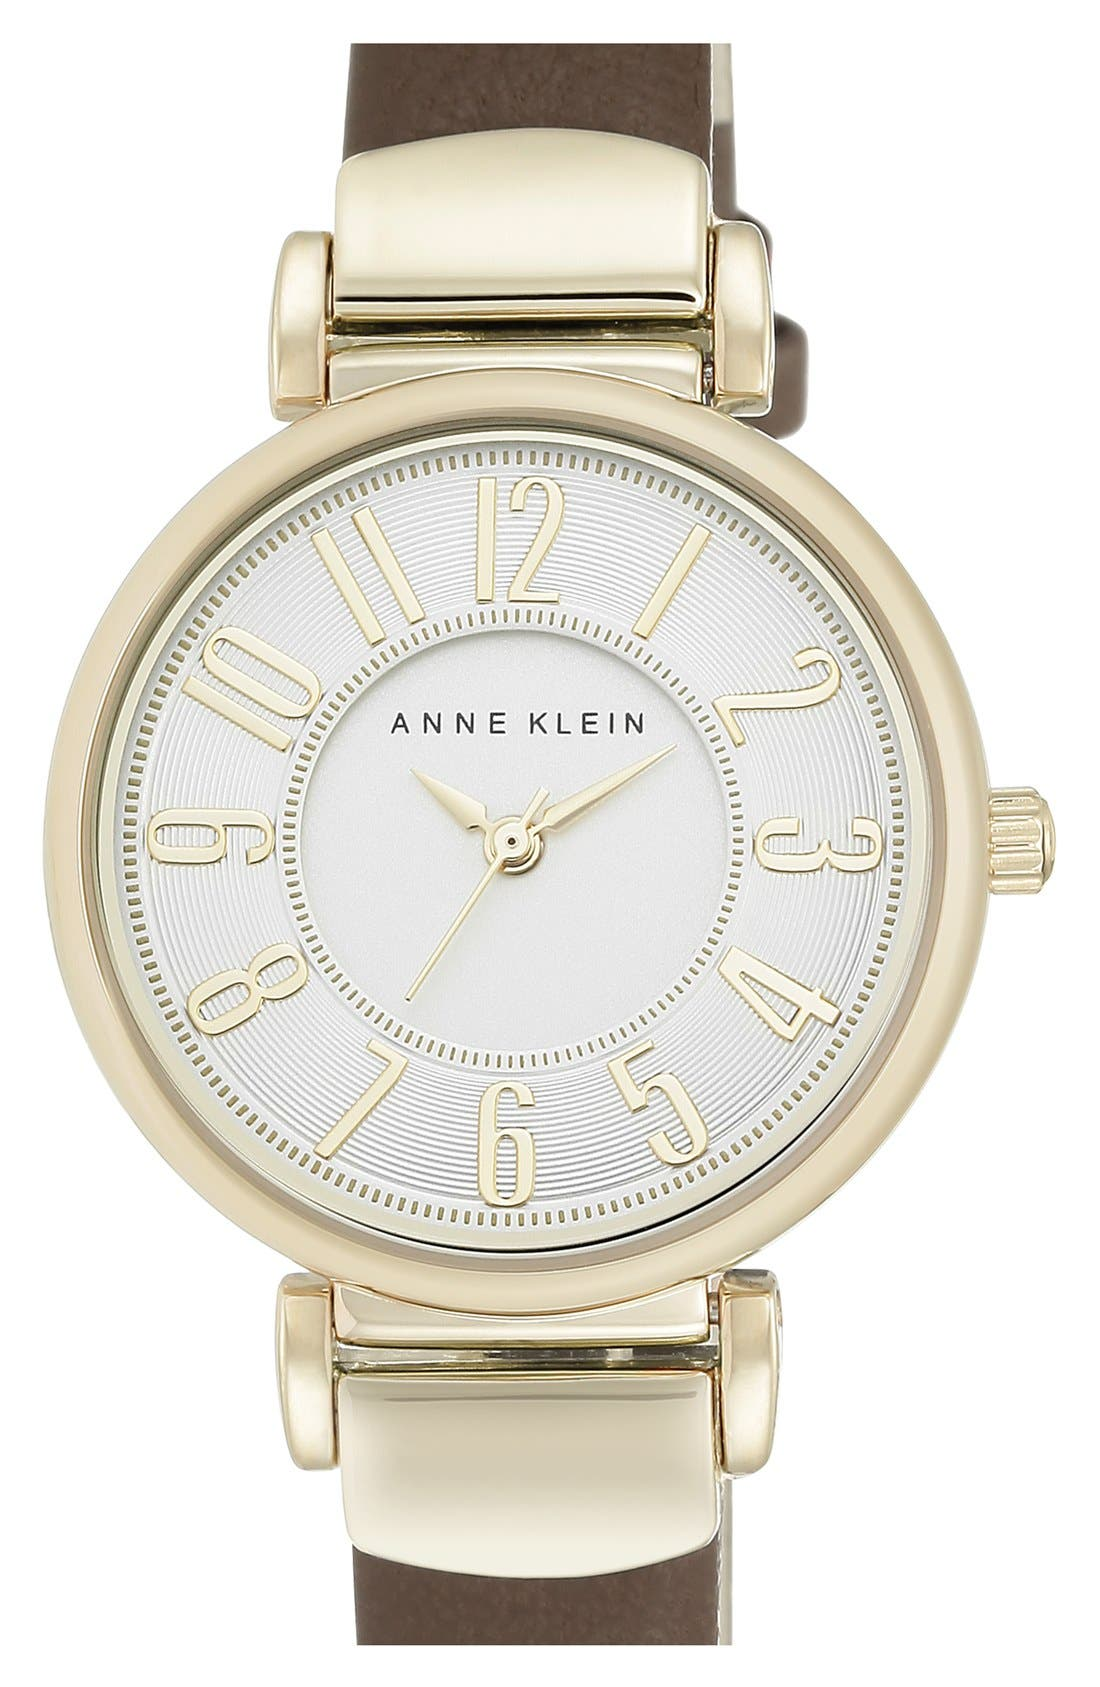 ANNE KLEIN, Leather Strap Watch, 30mm, Main thumbnail 1, color, 200